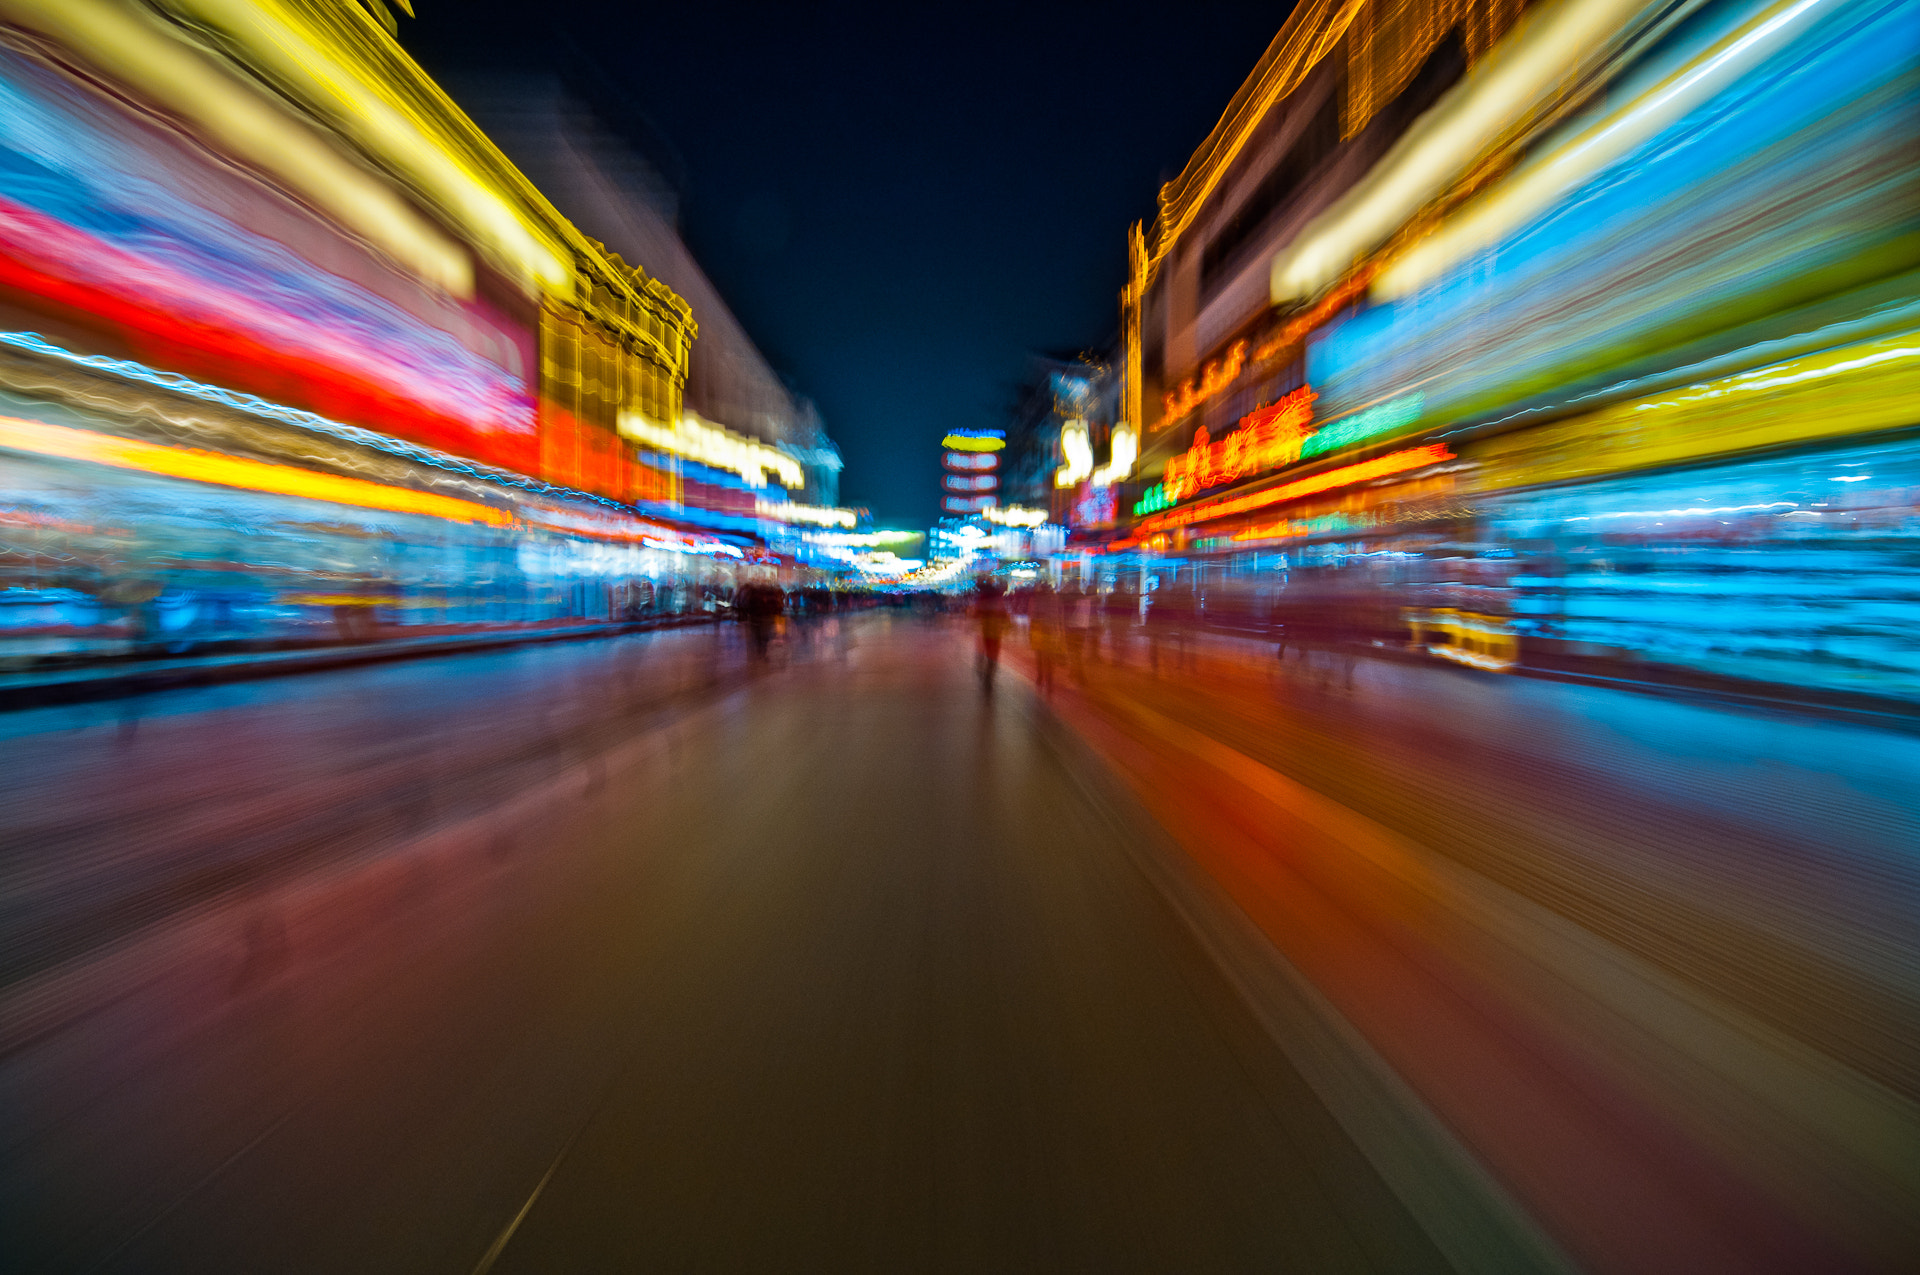 Photograph Warp Speed by Kevin Dharmawan on 500px